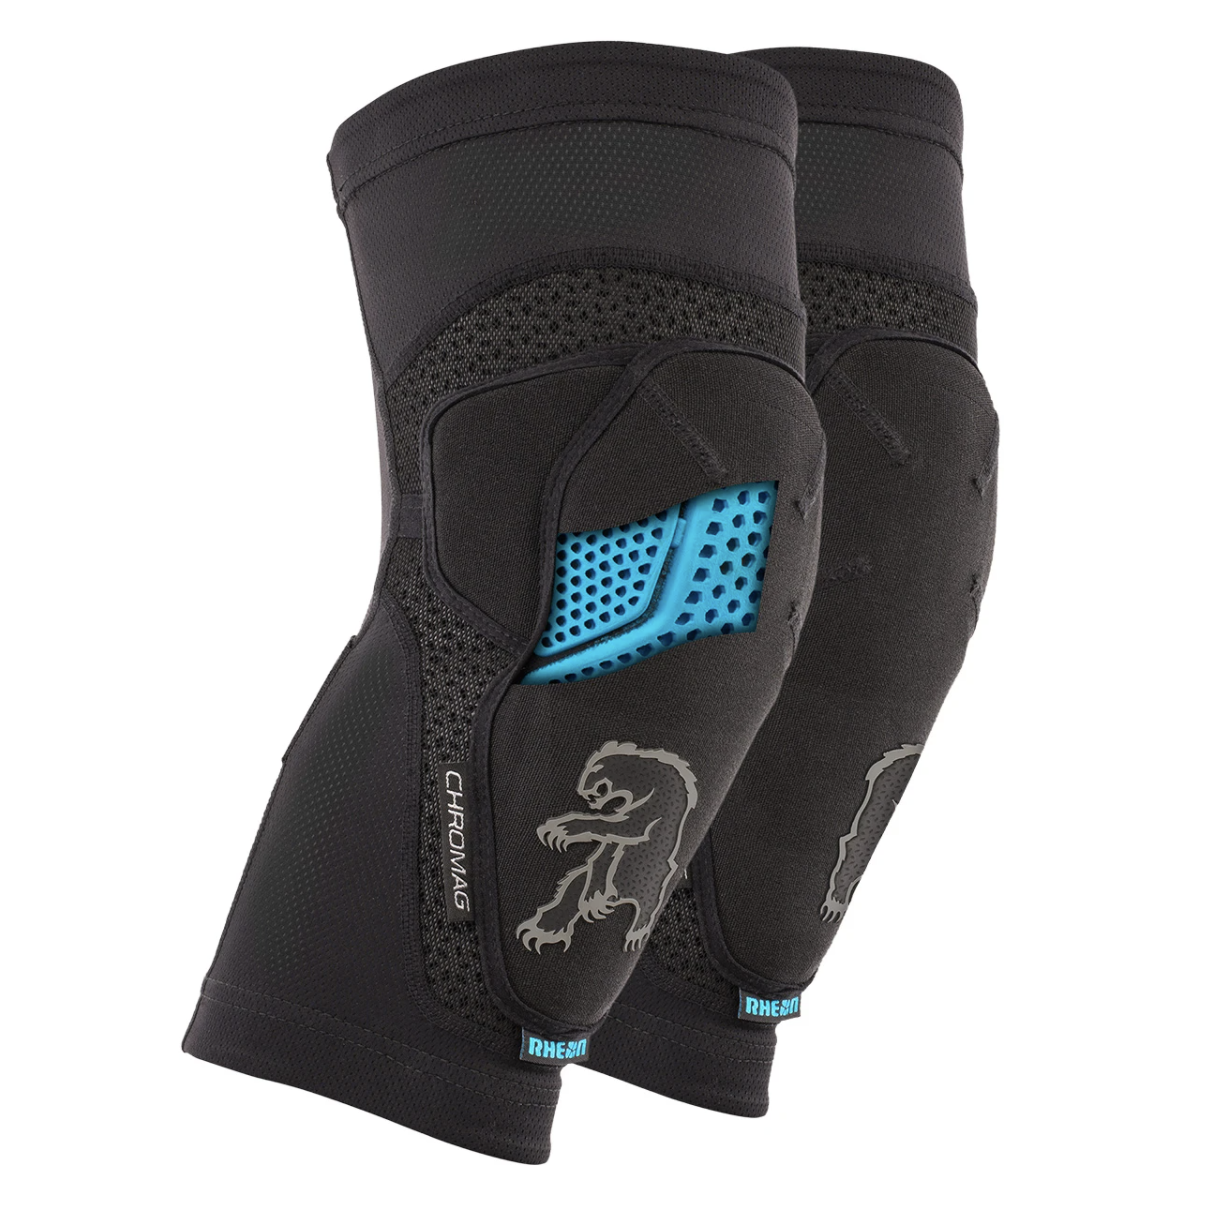 Chromag Rift Knee Pad-1